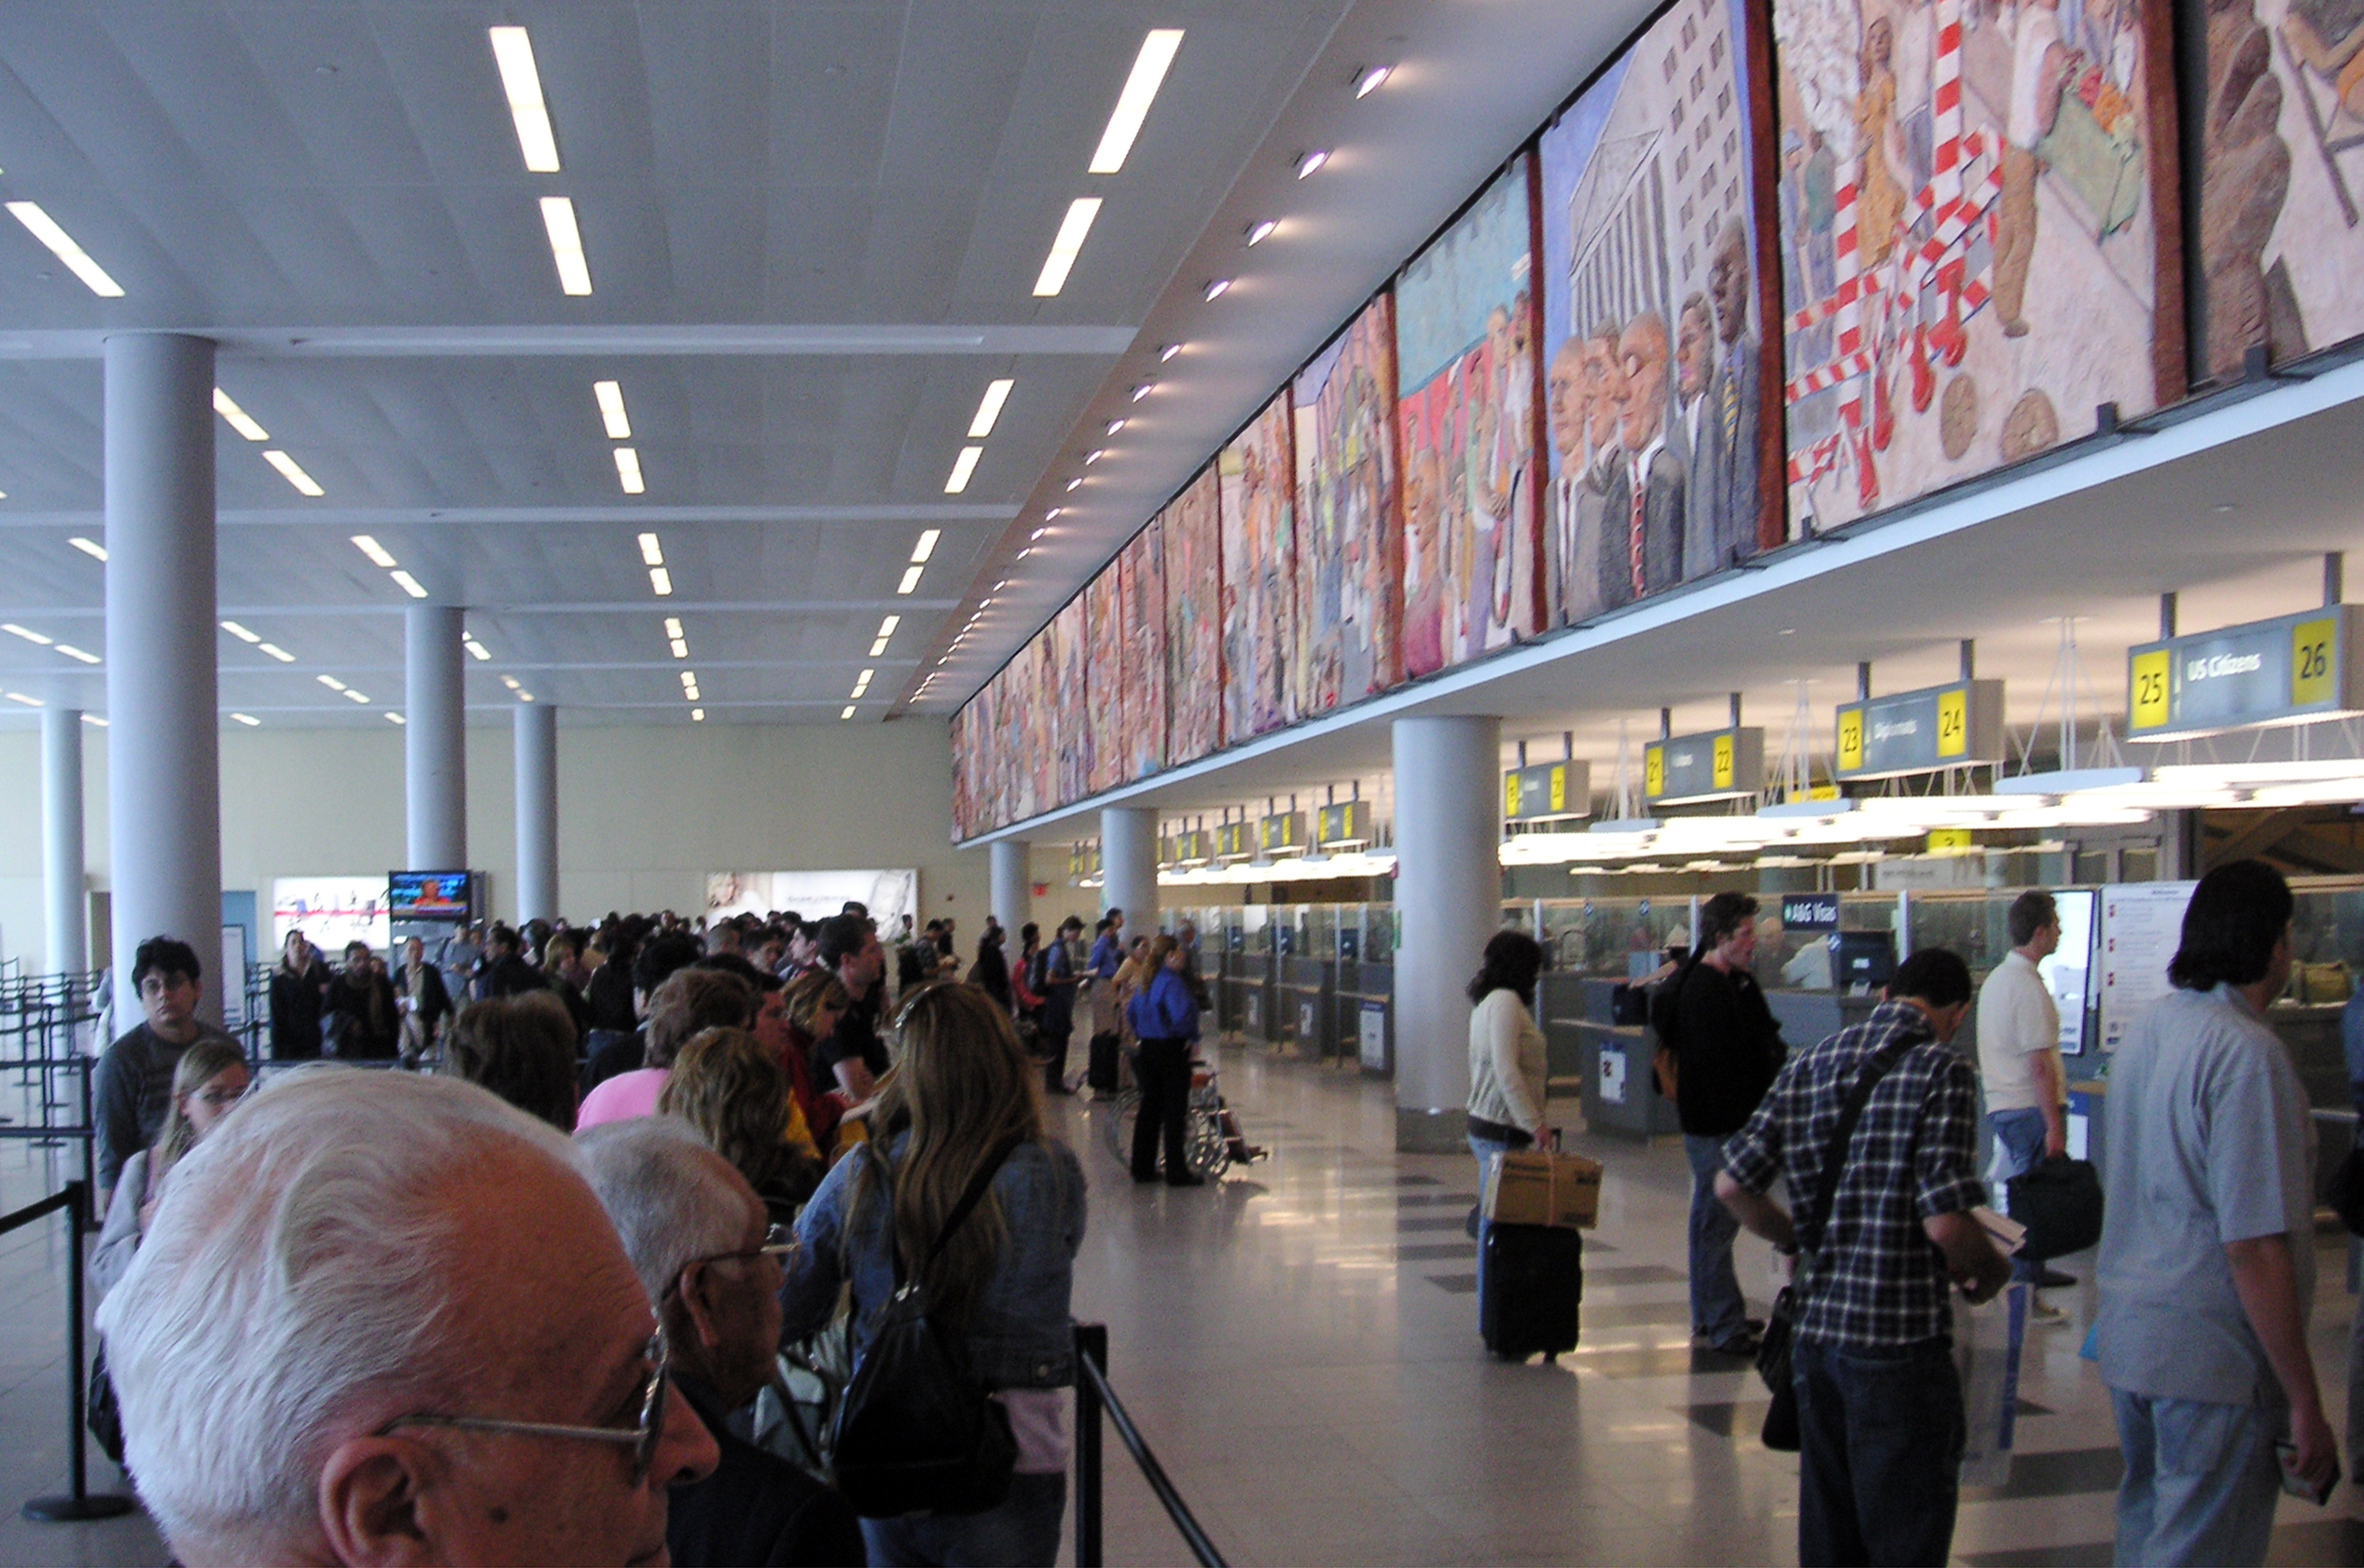 U.S. Customs and Border Protection at John F. Kennedy International Airport in Queens, N.Y.